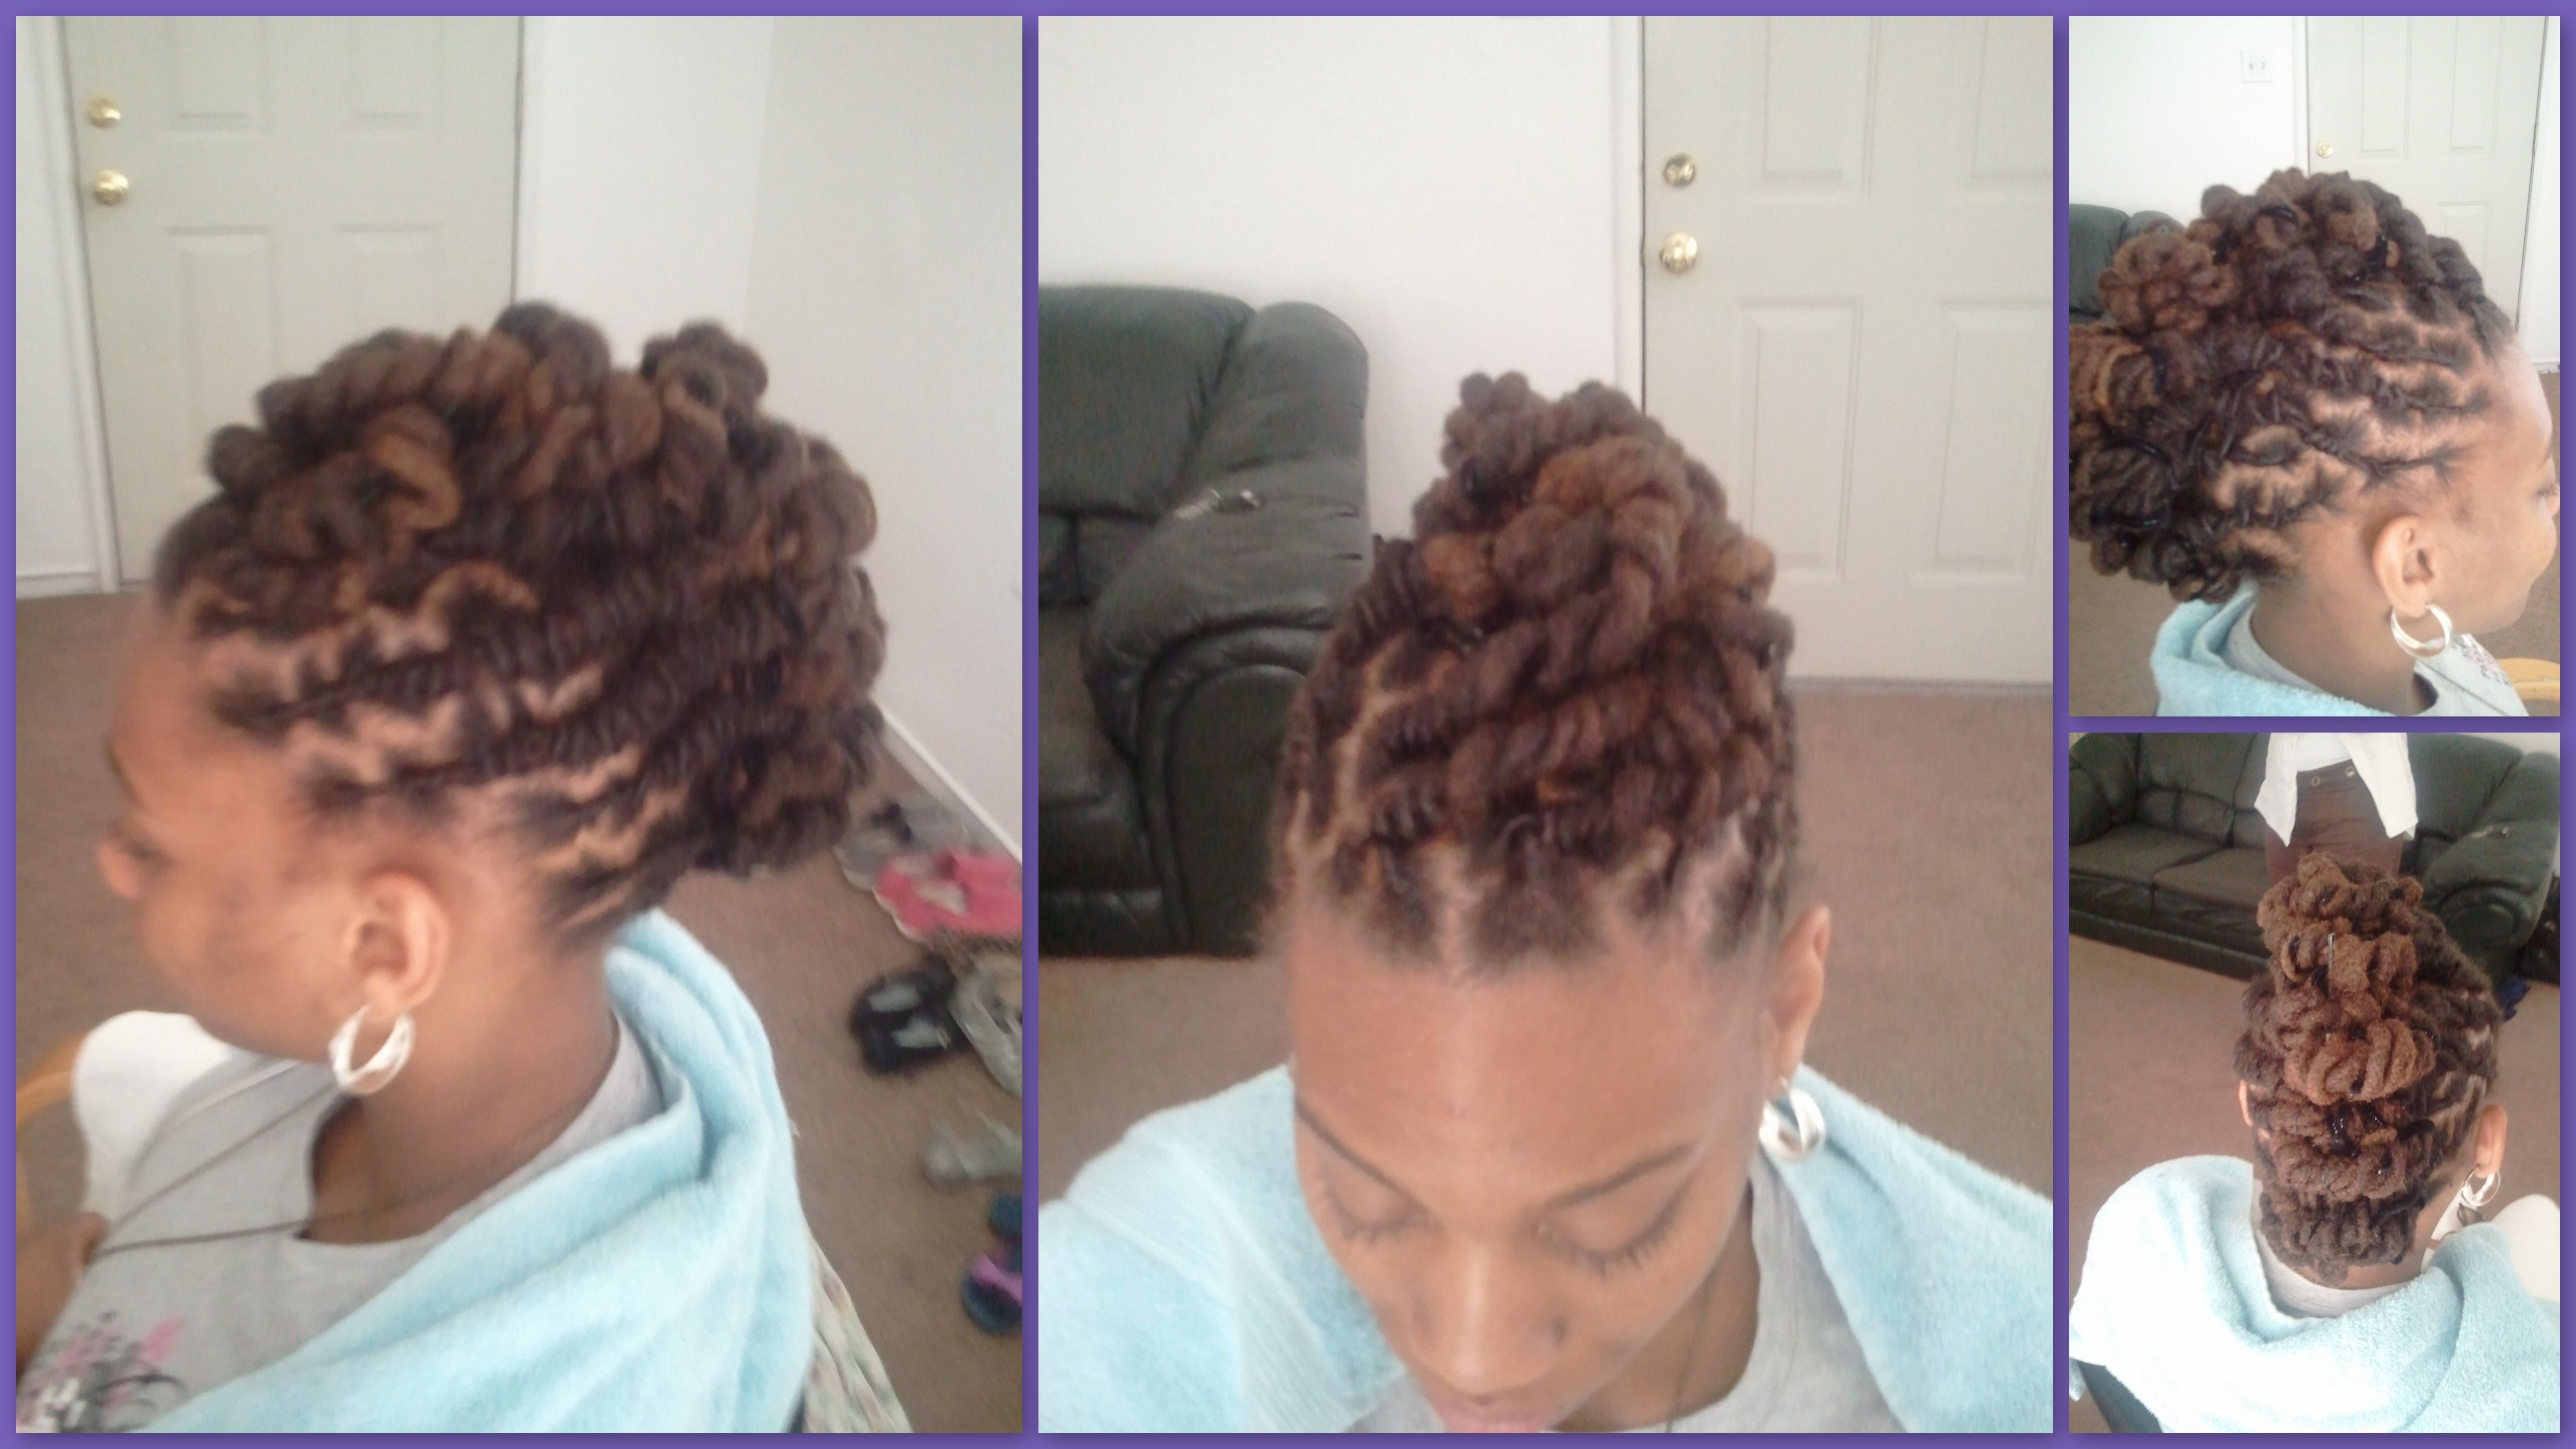 Twotone locs mohawk blonde brown hair mainly curly